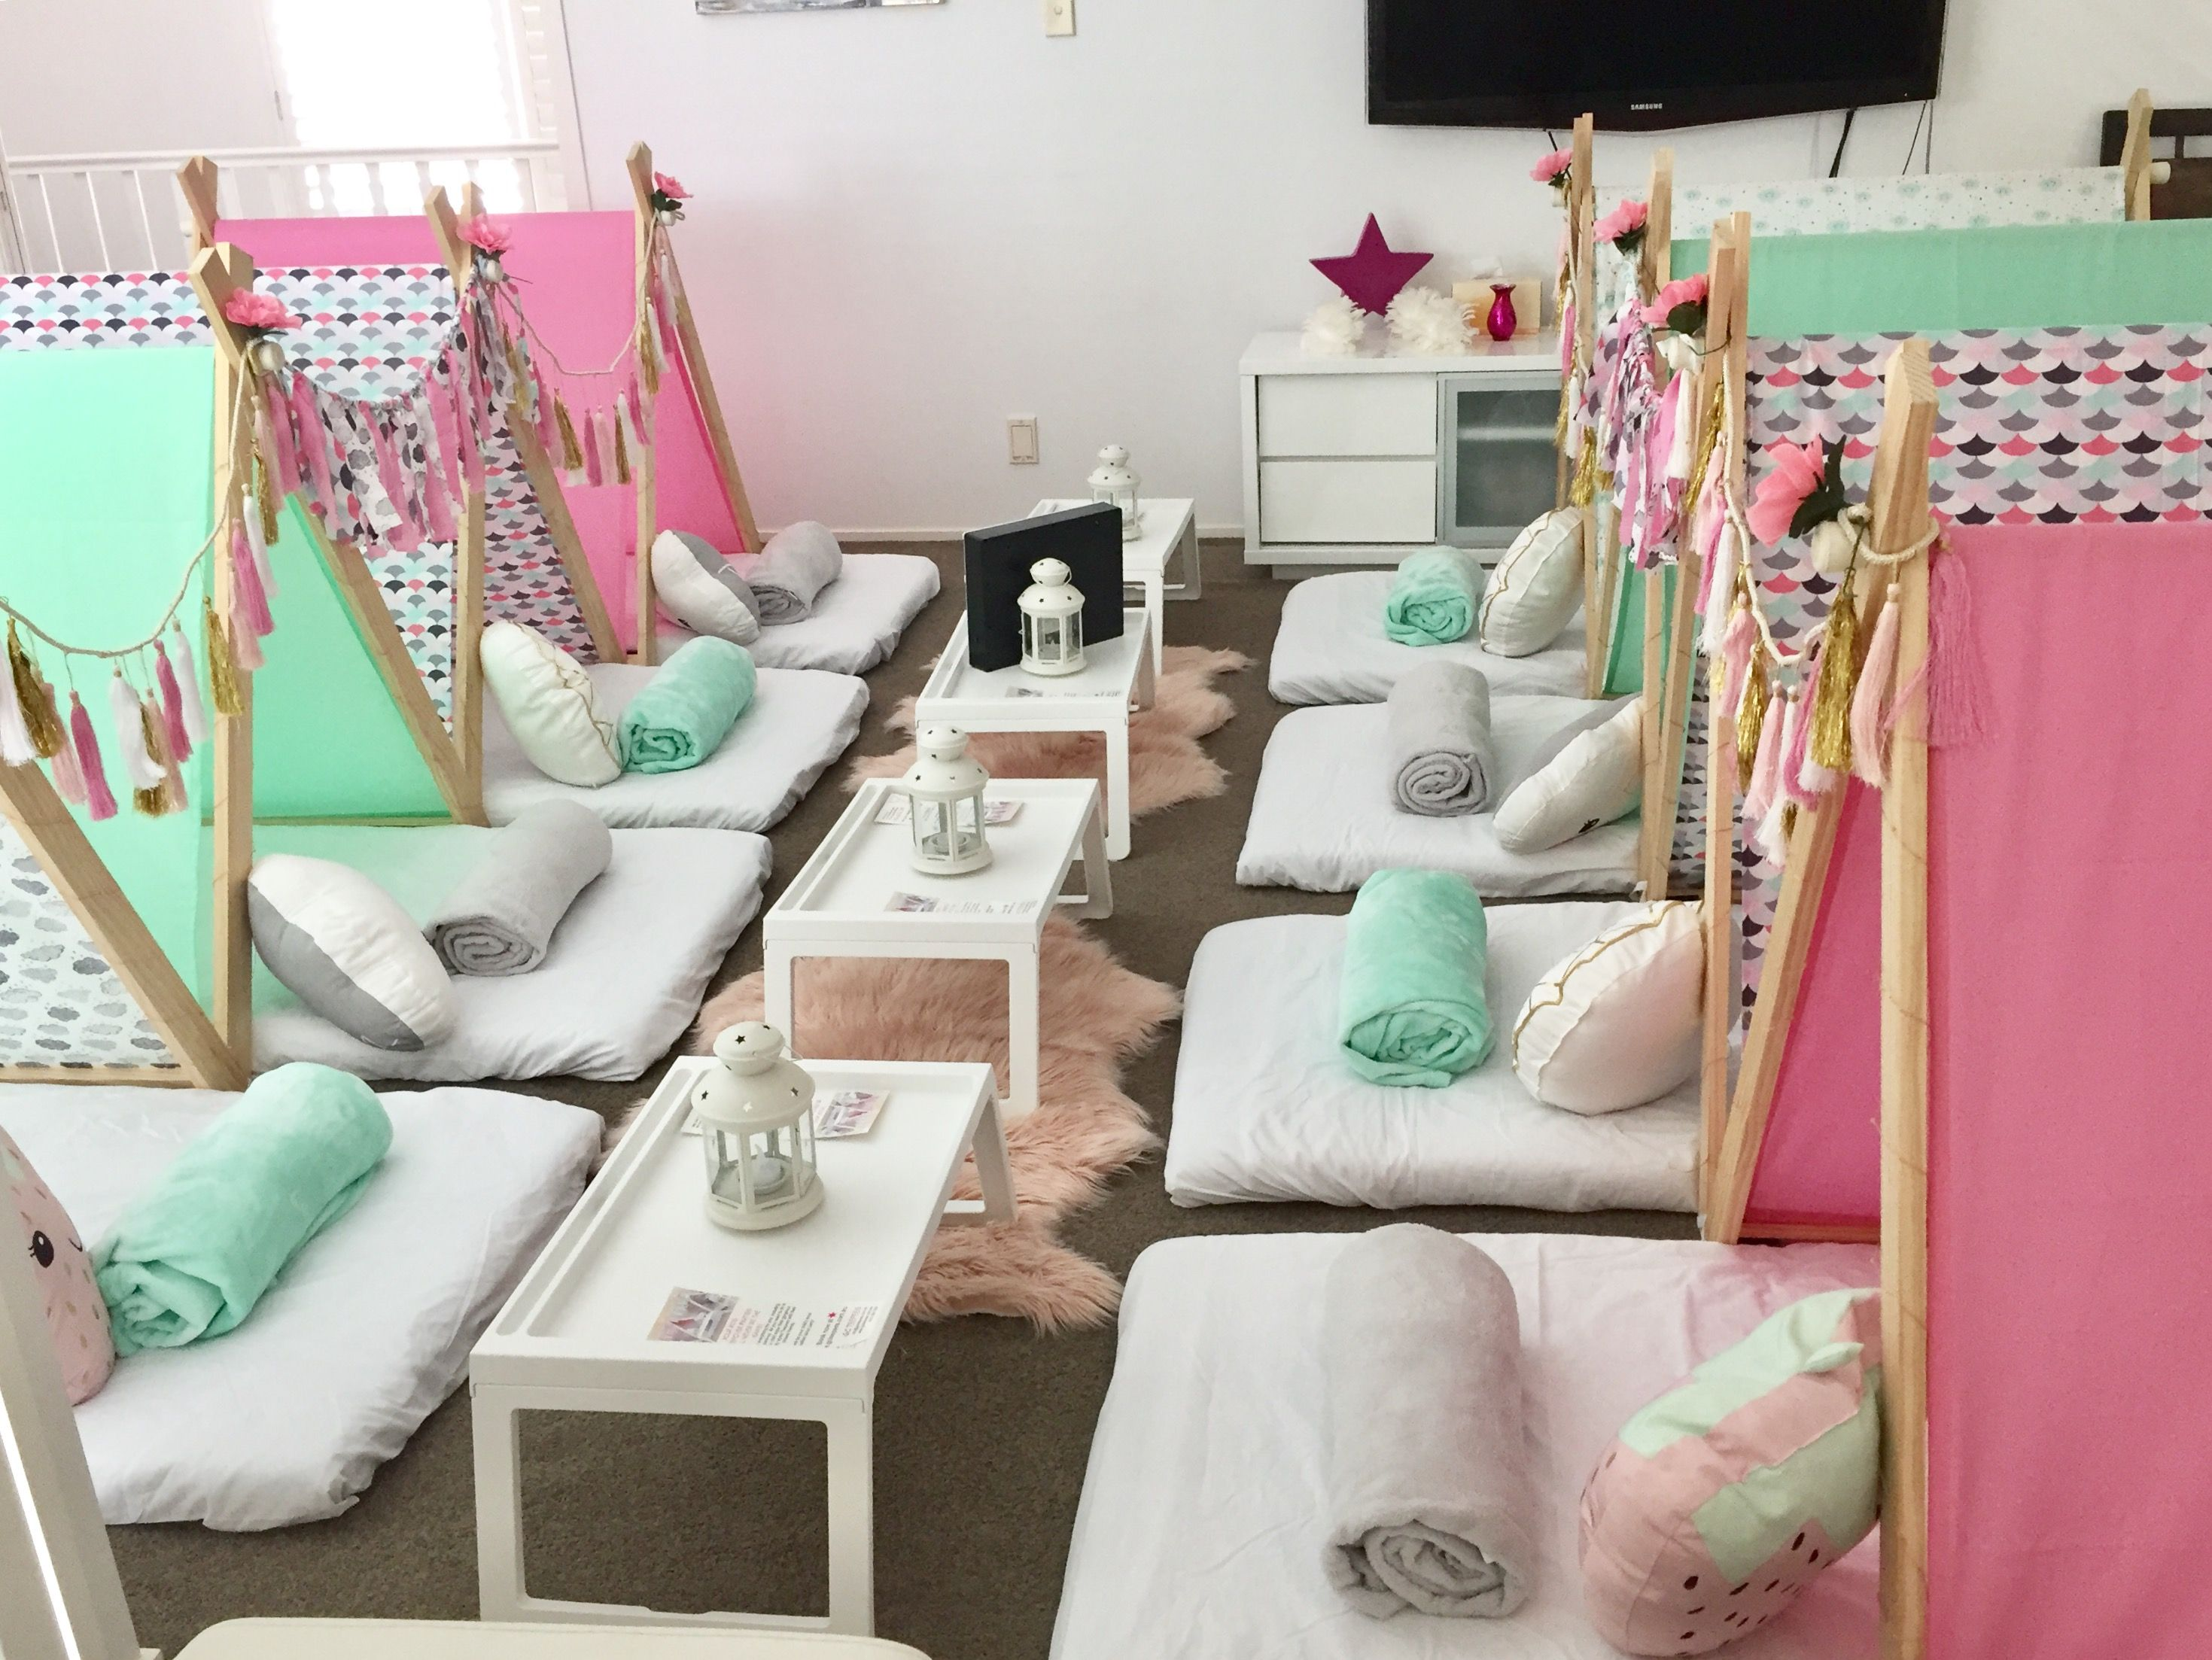 Pin By The Prince And The P On P S 8th Birthday Party In 2020 Slumber Party Birthday Spa Sleepover Party Teepee Party